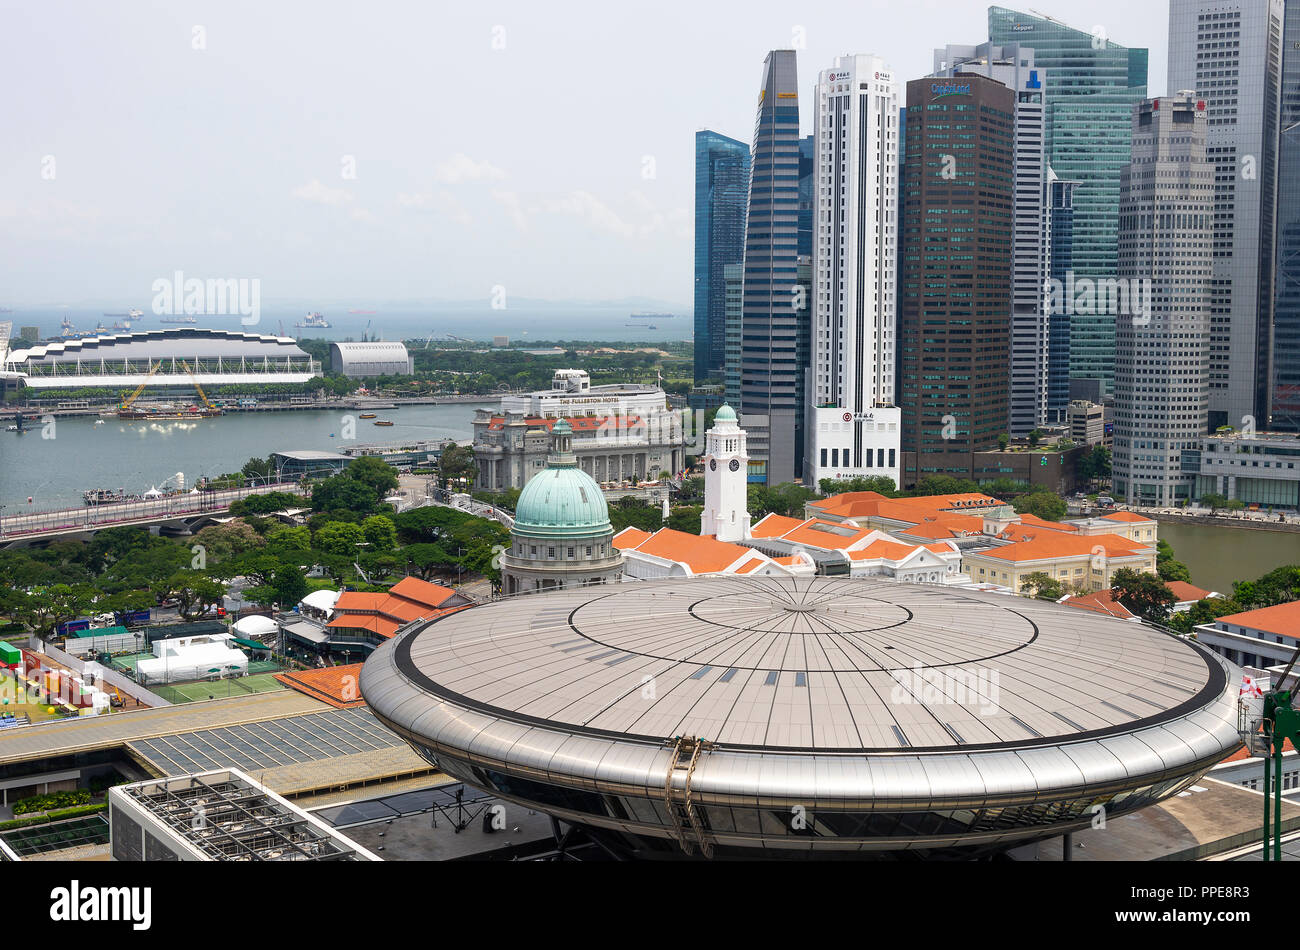 Aerial View of the Old and New Supreme Court Buildings with Asian Civilisations Museum and Financial District of Downtown Singapore Asia - Stock Image